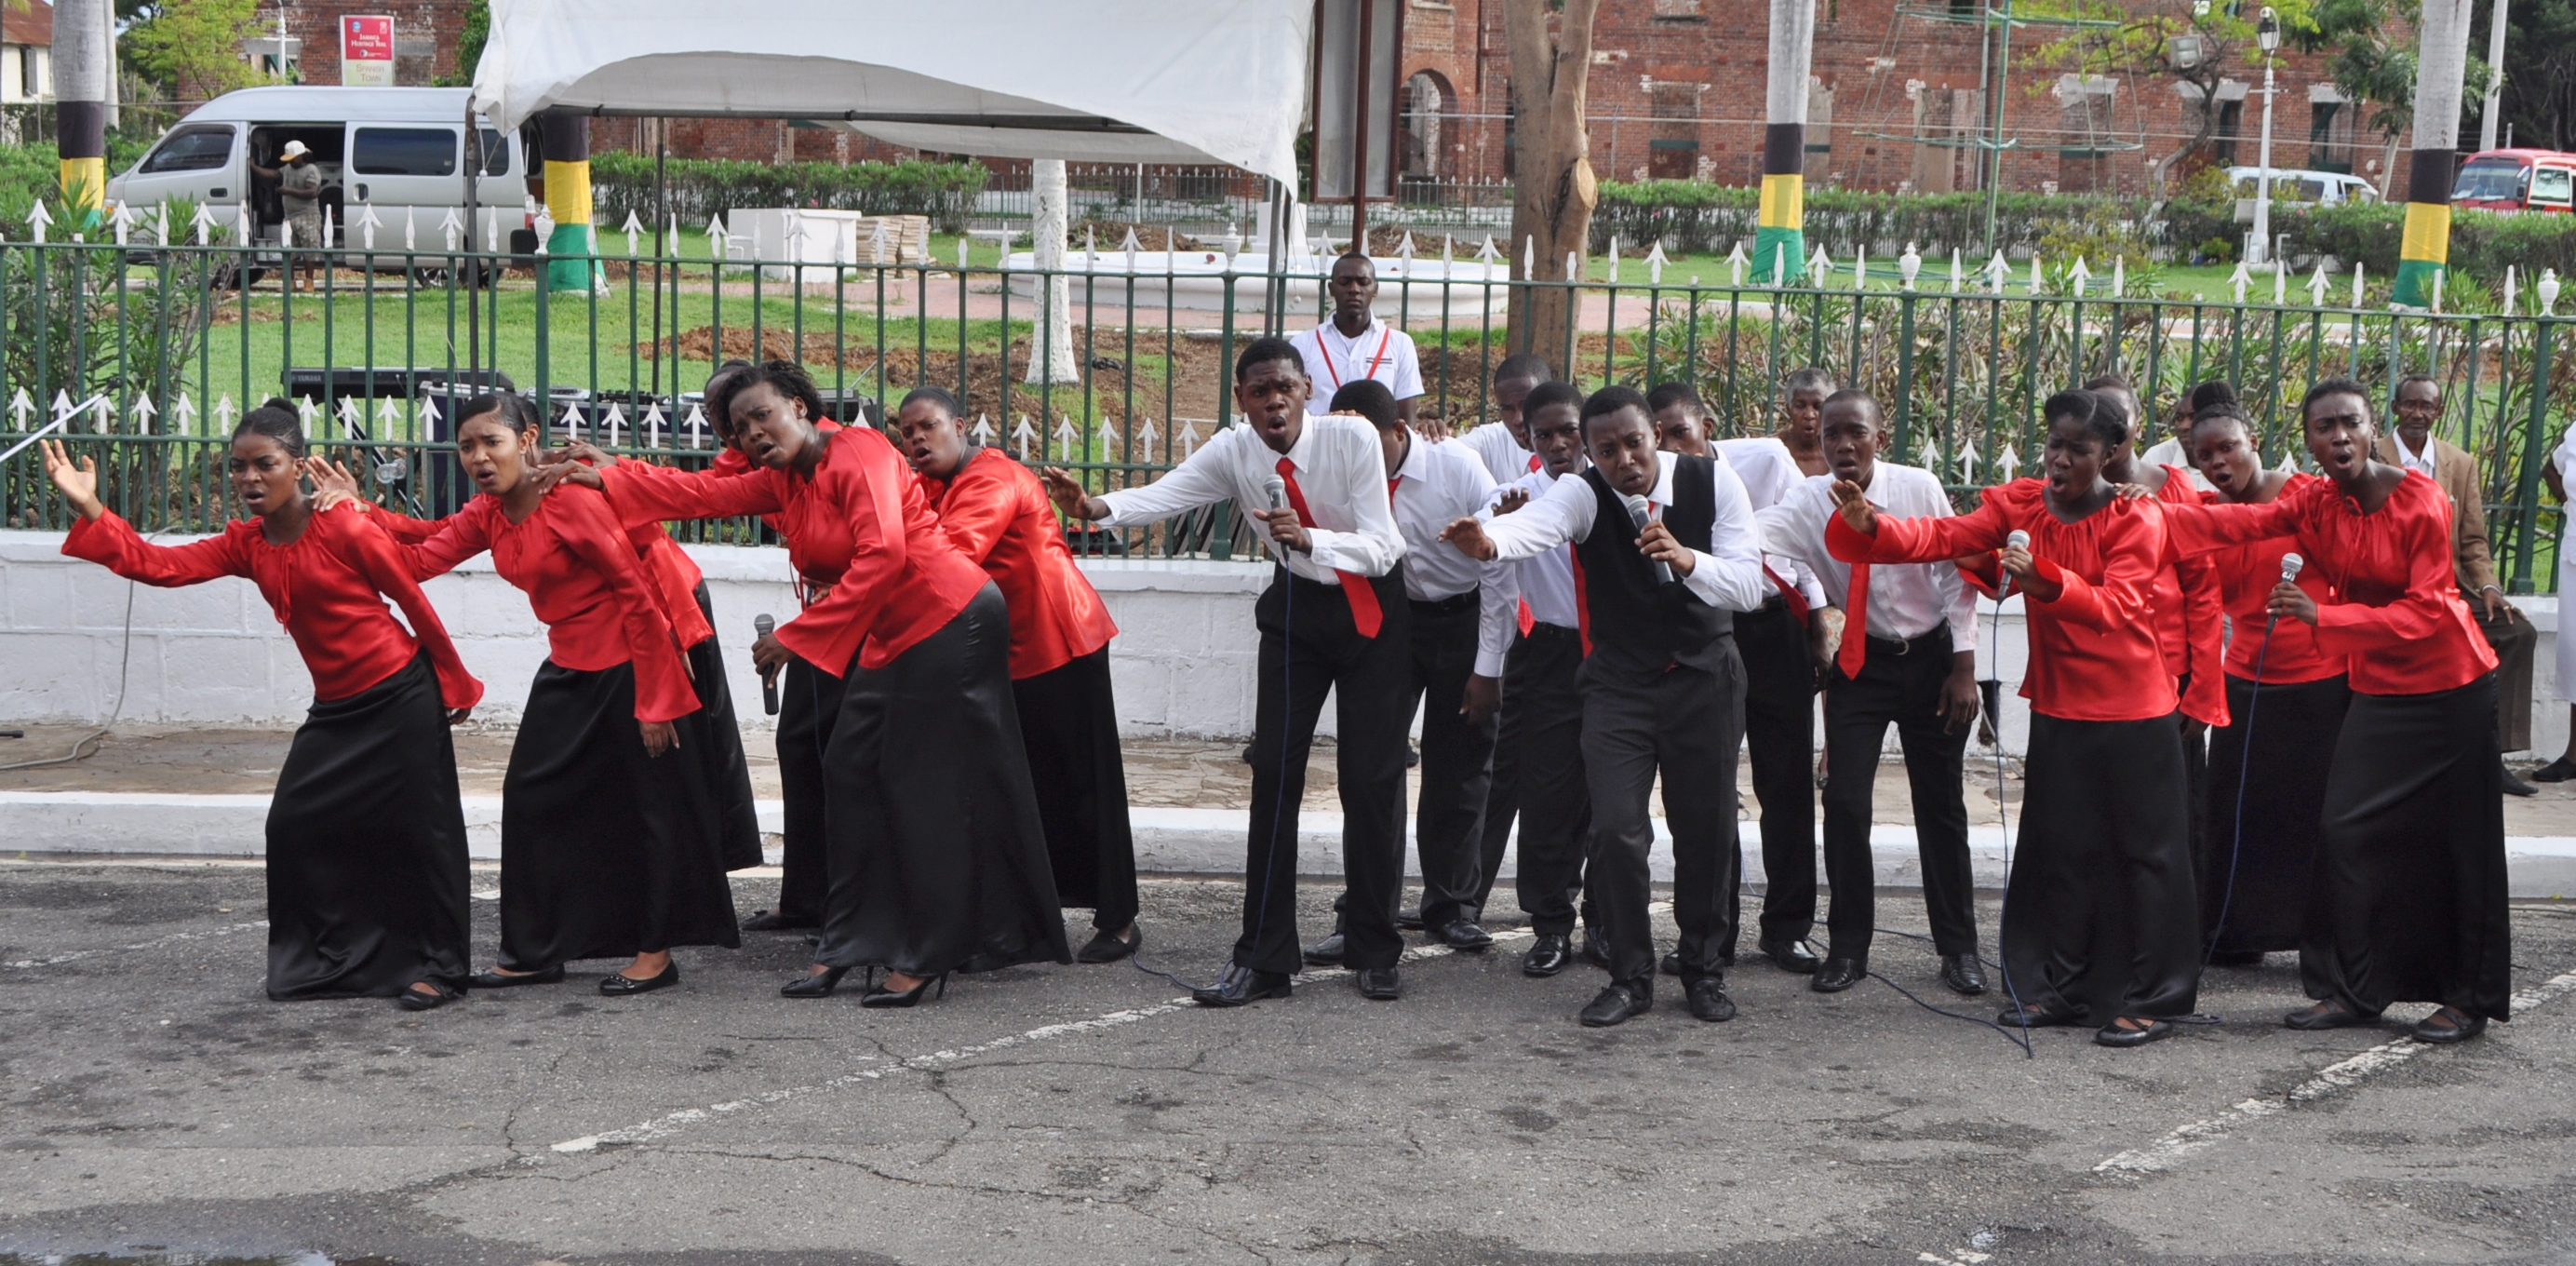 Diocesan Schools Featured At Cathedral Sunday 2014